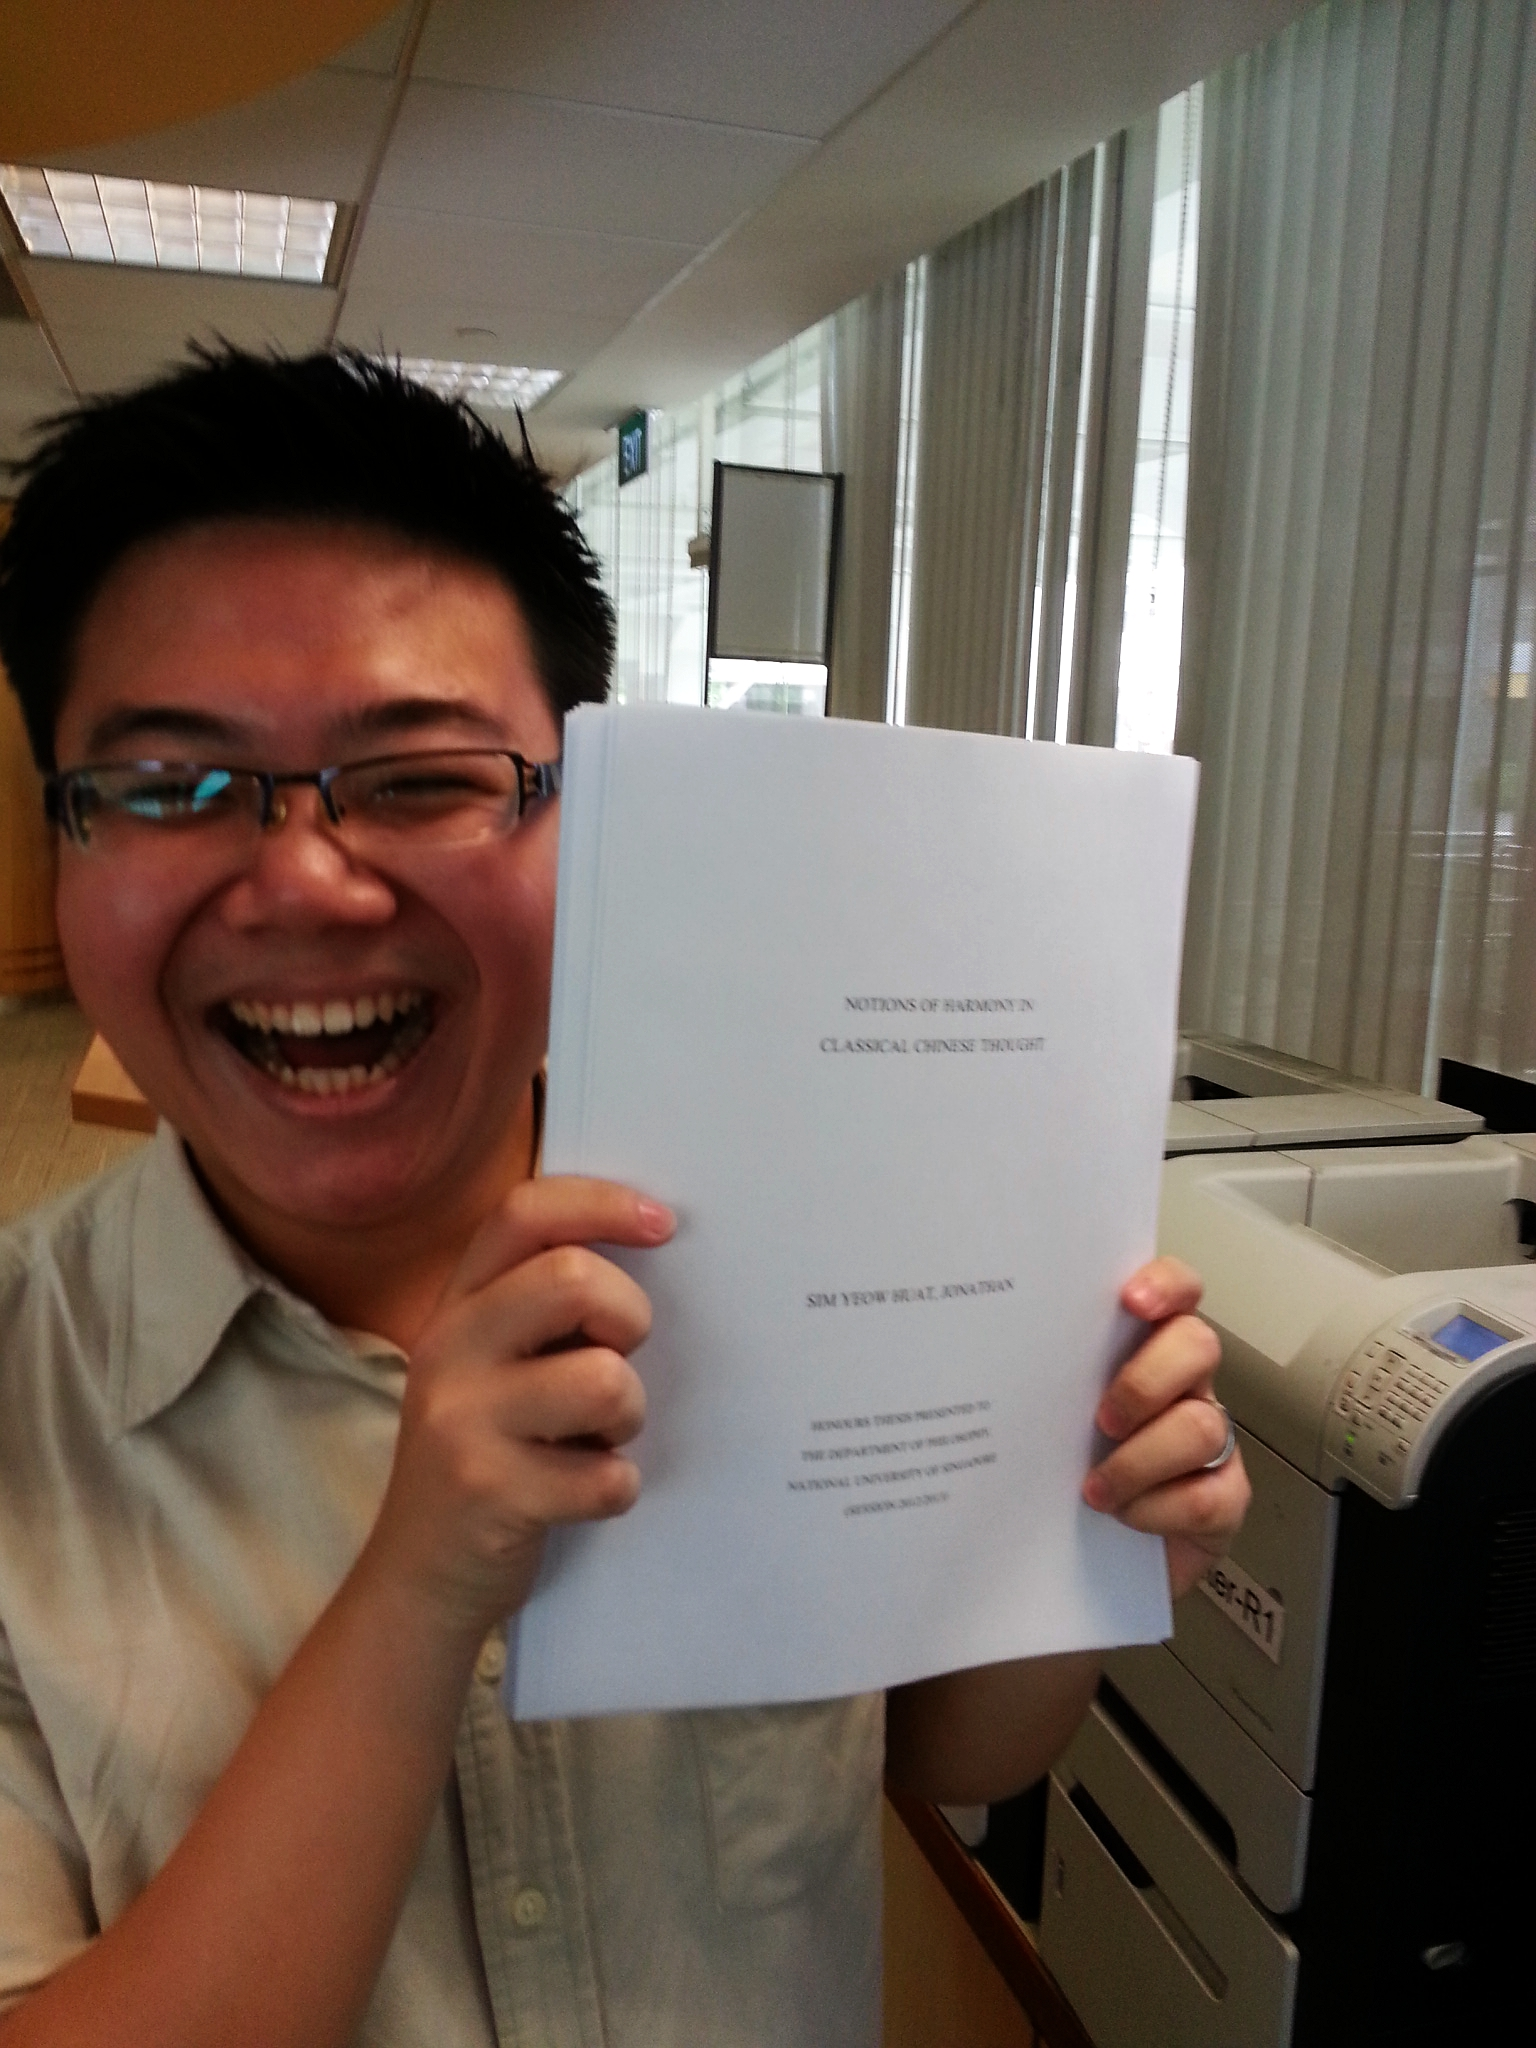 Proudly displaying the printed thesis! Notice the disheveled hair from the many overnight editing/writing marathons.